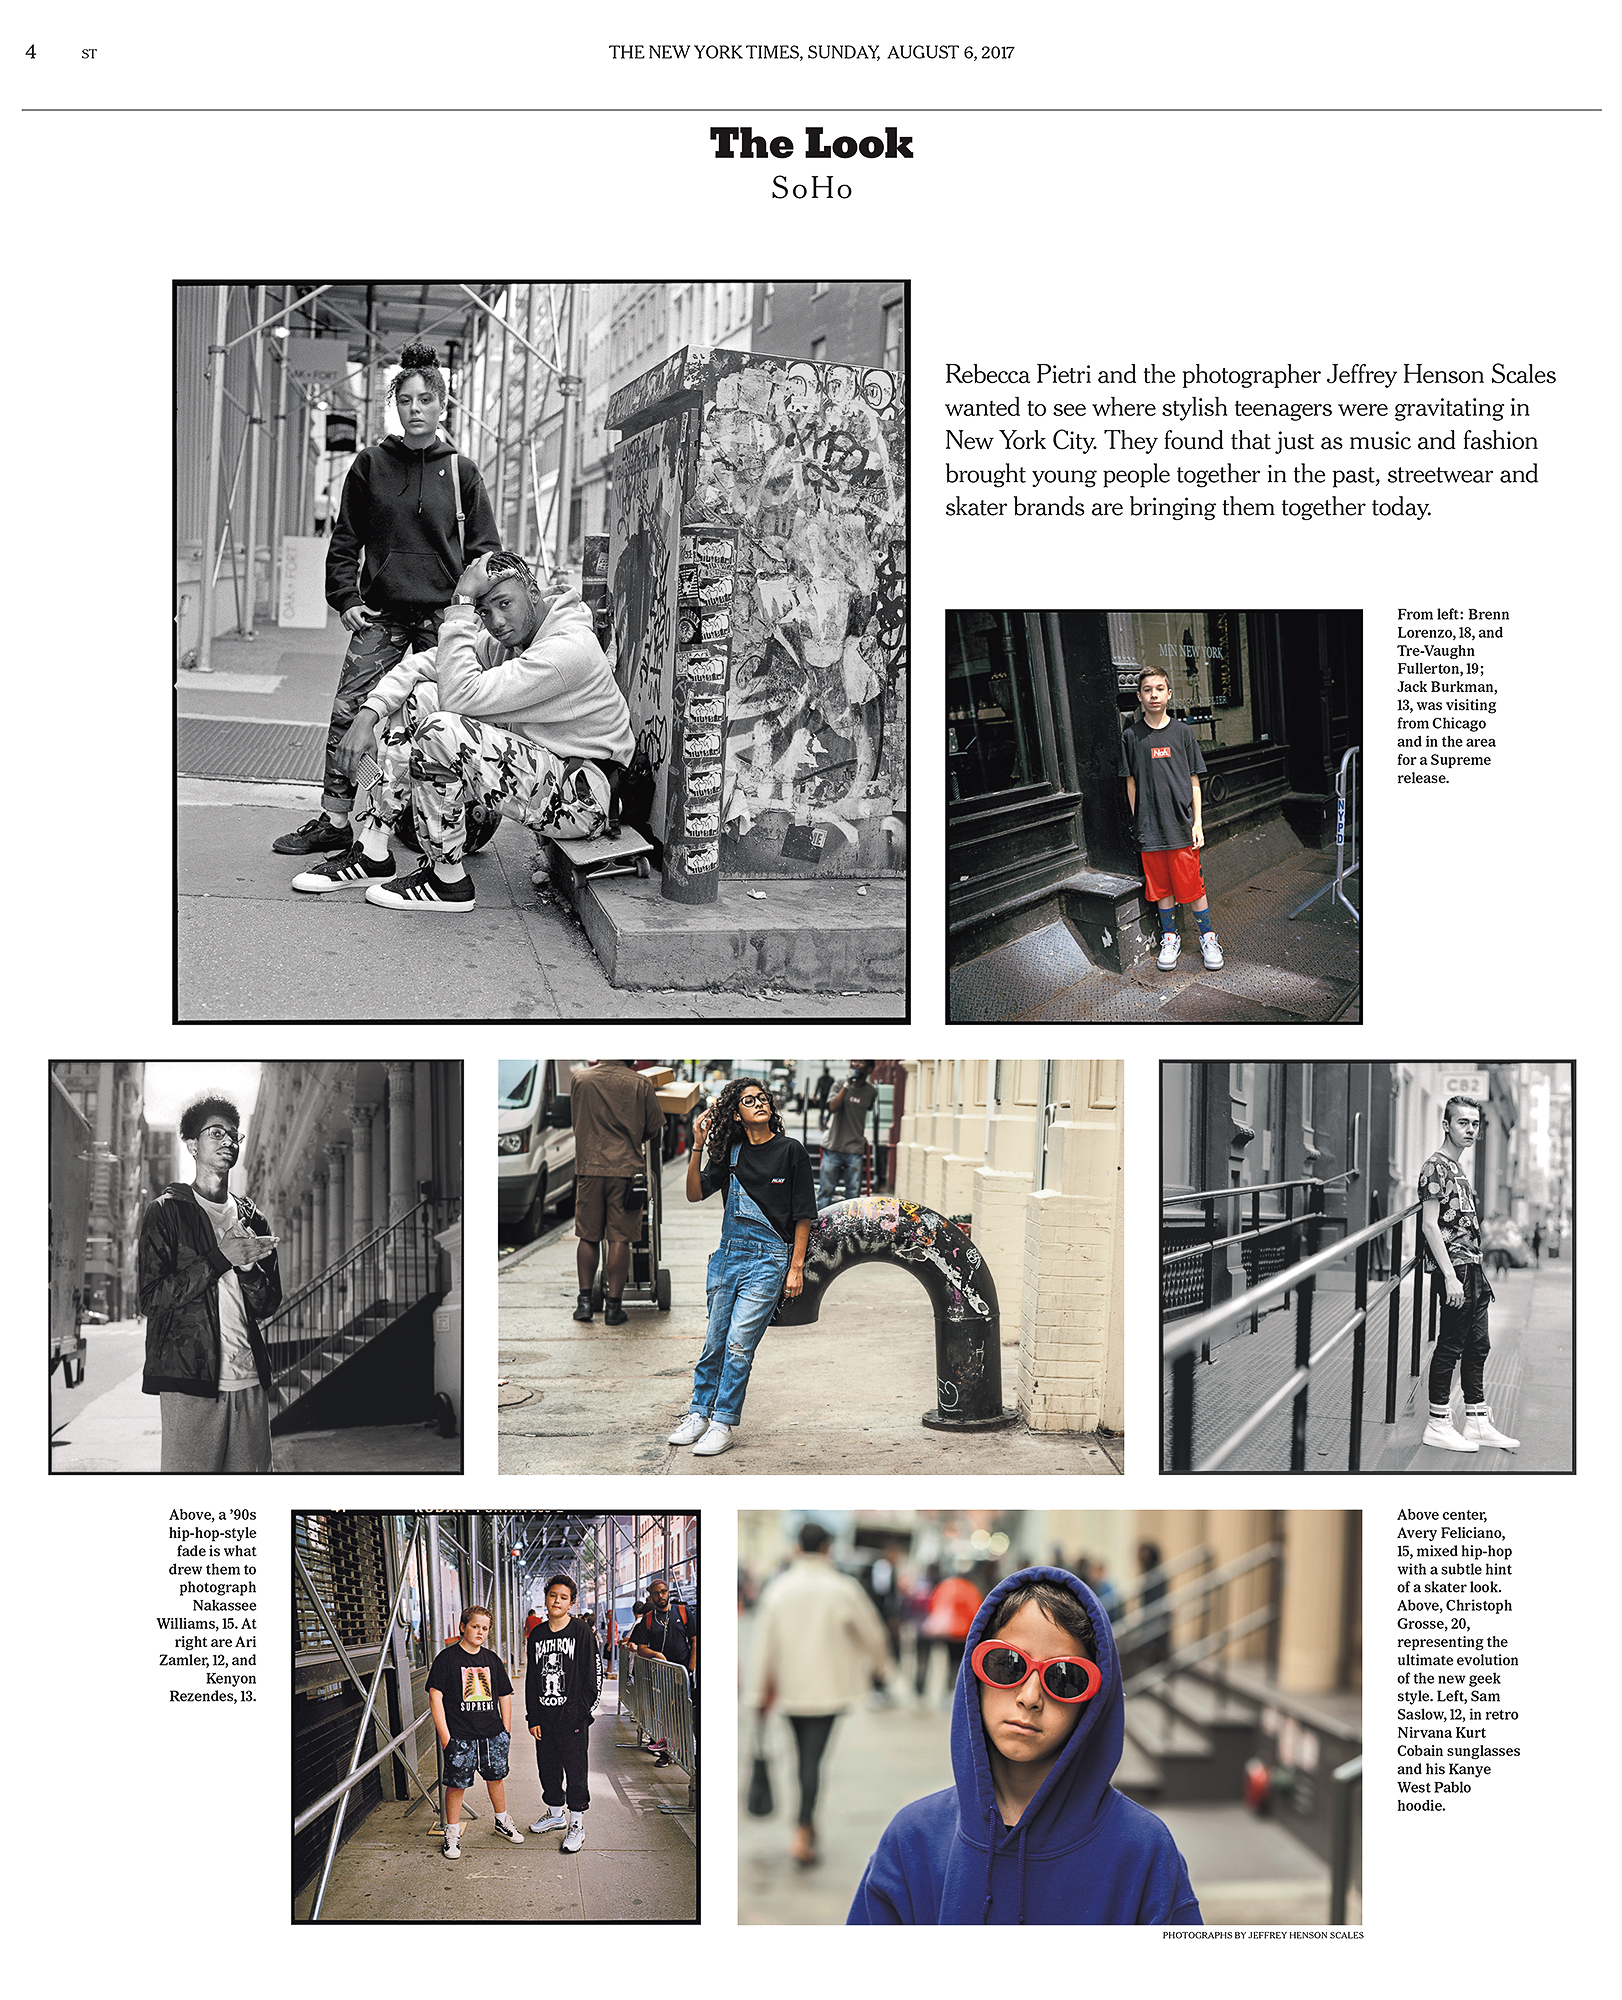 The Look _ New York Times_ Rebecca Pietri Stylist _ Casting _ Jeffery Henson Scale Photgrapher_Eve Lyon Editor_ New Geeks_Article_Nom Core- Youth Fashion_ Supreme_Palace_Vans_Street fashion _ Soho_Article.jpg